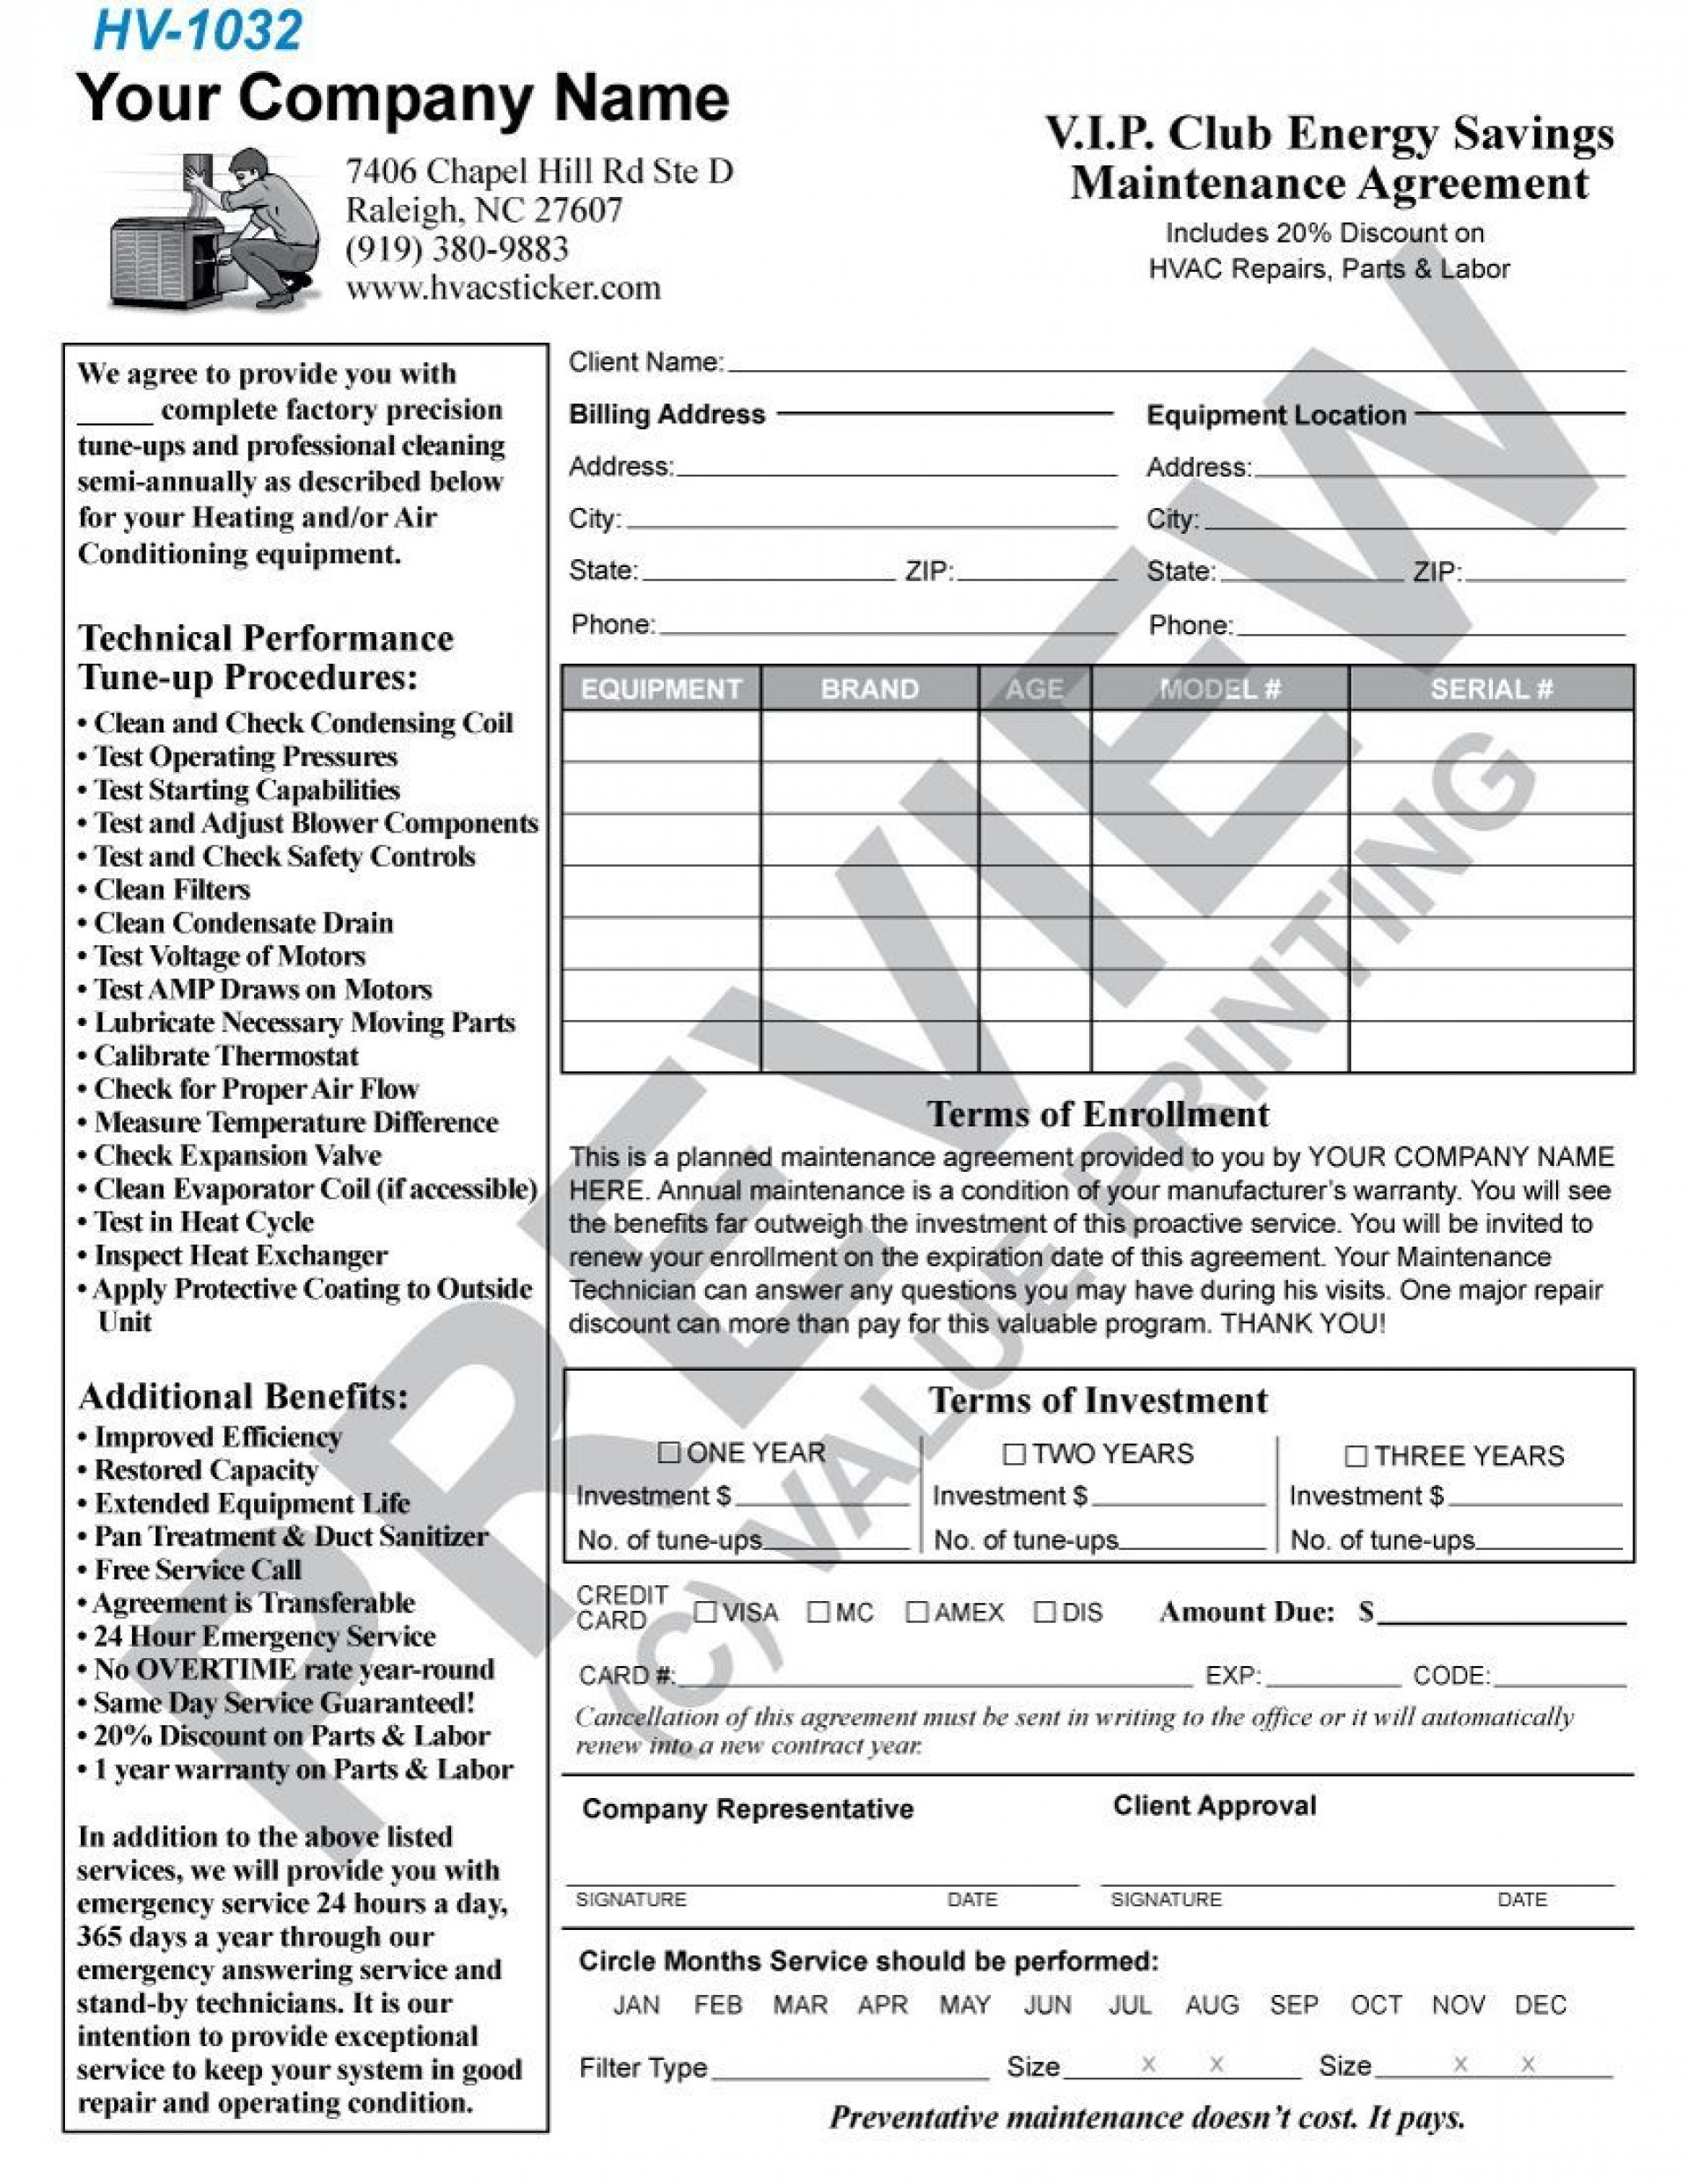 004 Incredible Commercial Hvac Service Agreement Template Picture  Maintenance Contract1920